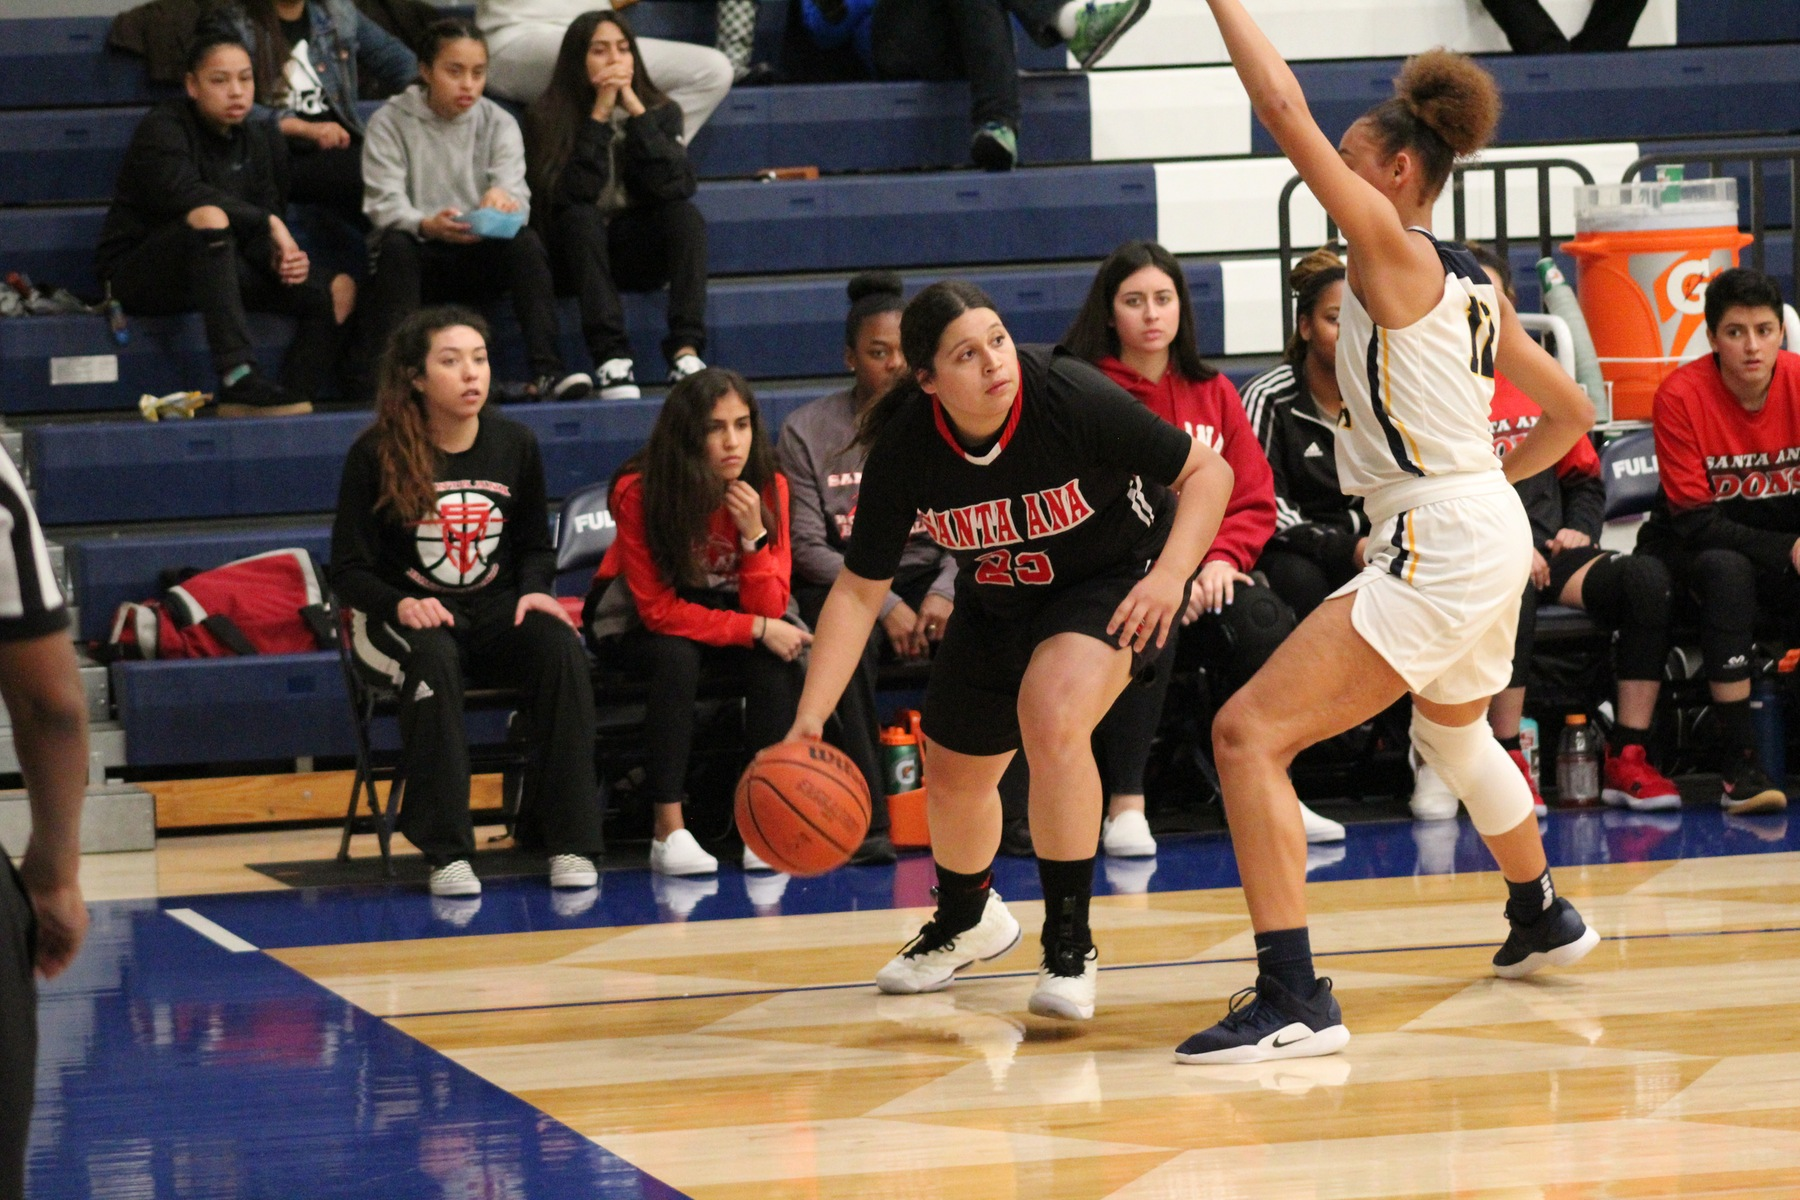 Shooting Woes Leads Santa Ana to Loss in OEC Matchup